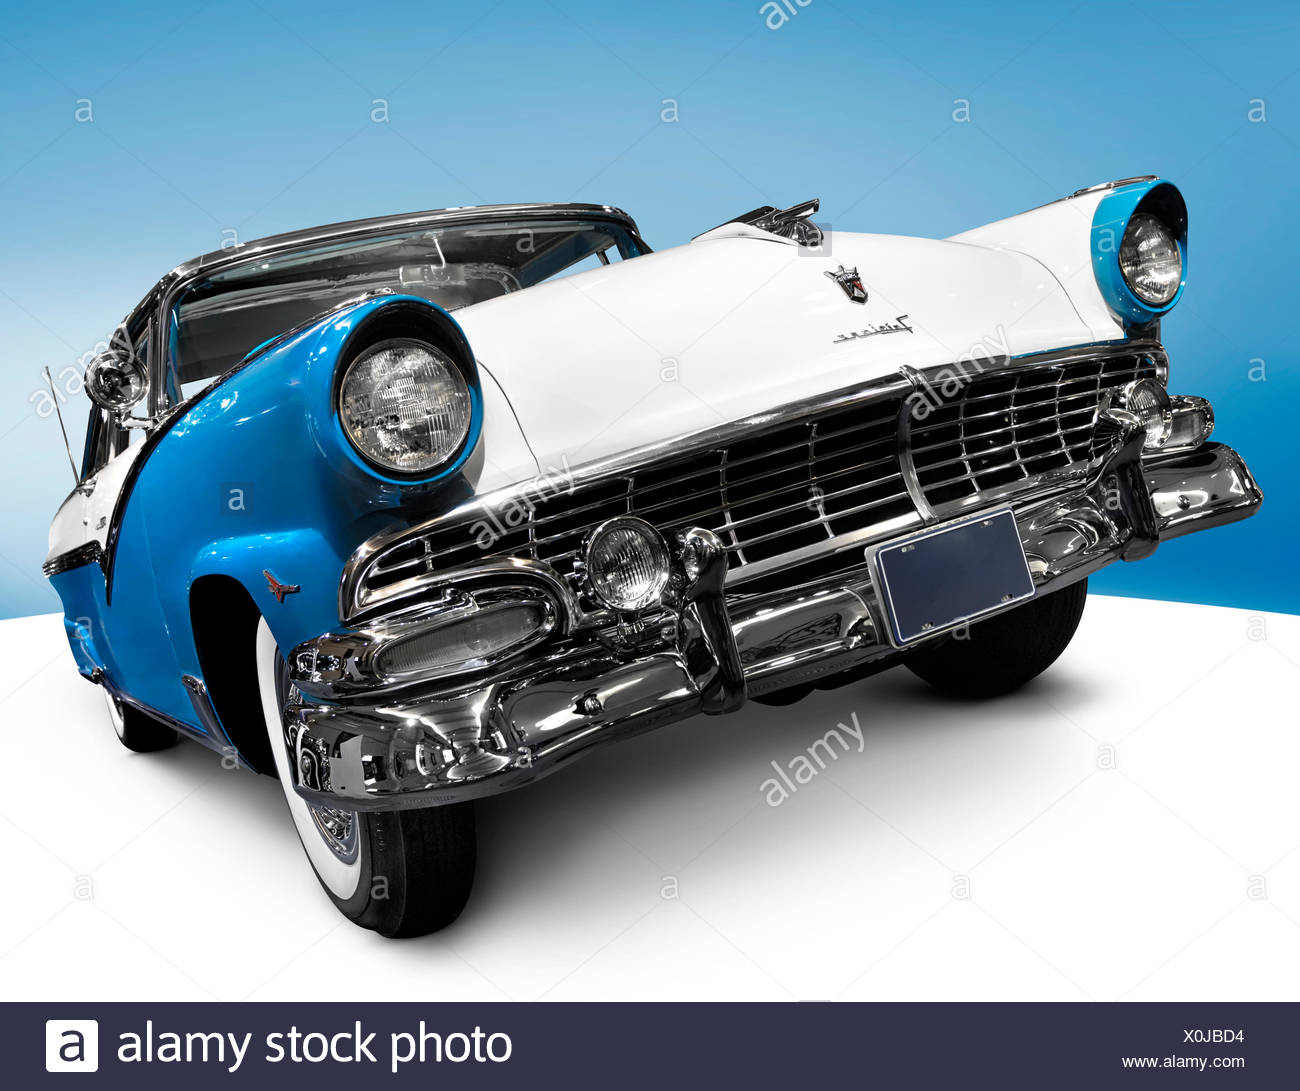 Crown Victoria Stock Photos Images Alamy 1980 Ford Coupe Turquoise Blue Skyliner 1956 Glasstop Vicky Classic Retro Car By Motor Company